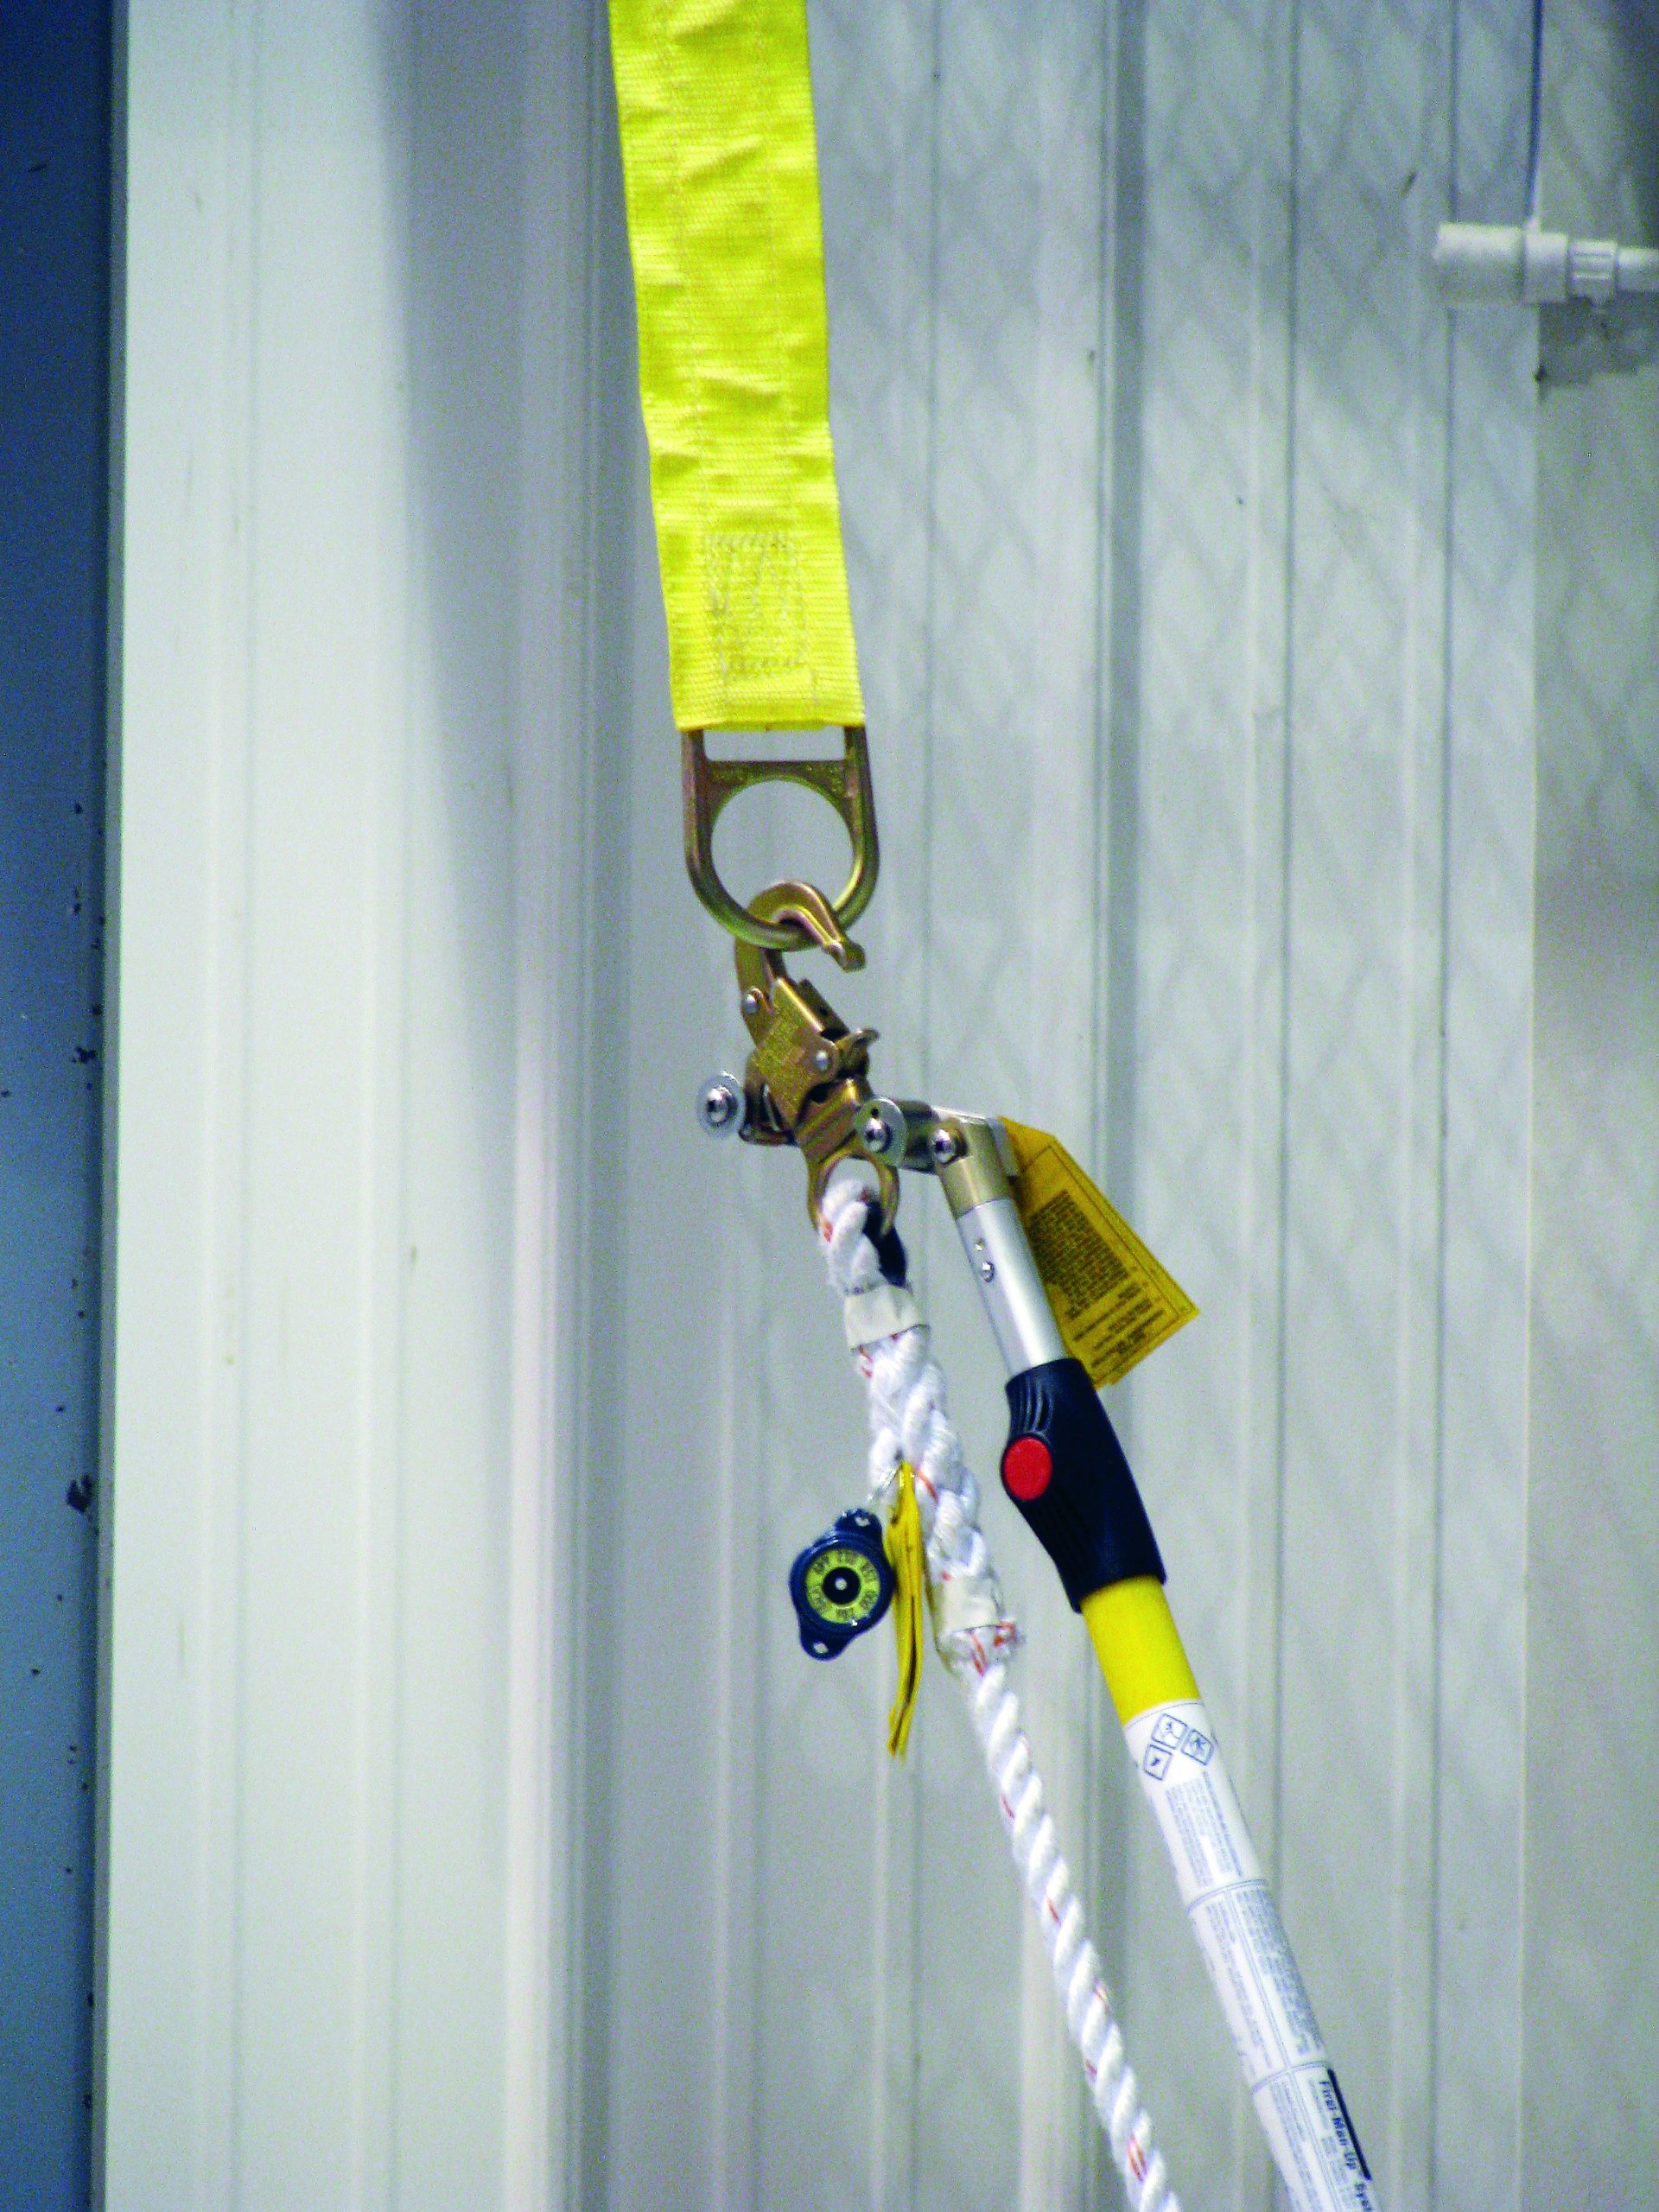 3M DBI SALA First-Man-Up 2104528 Remote Anchor System, 8' to 16' adjustable pole, Tie-Off Adaptor and Snap Hook Installation/Removal Tool, 3' Tie-Off Adaptor, Carrying Bag, Navy/Yellow by 3M Fall Protection Business (Image #2)